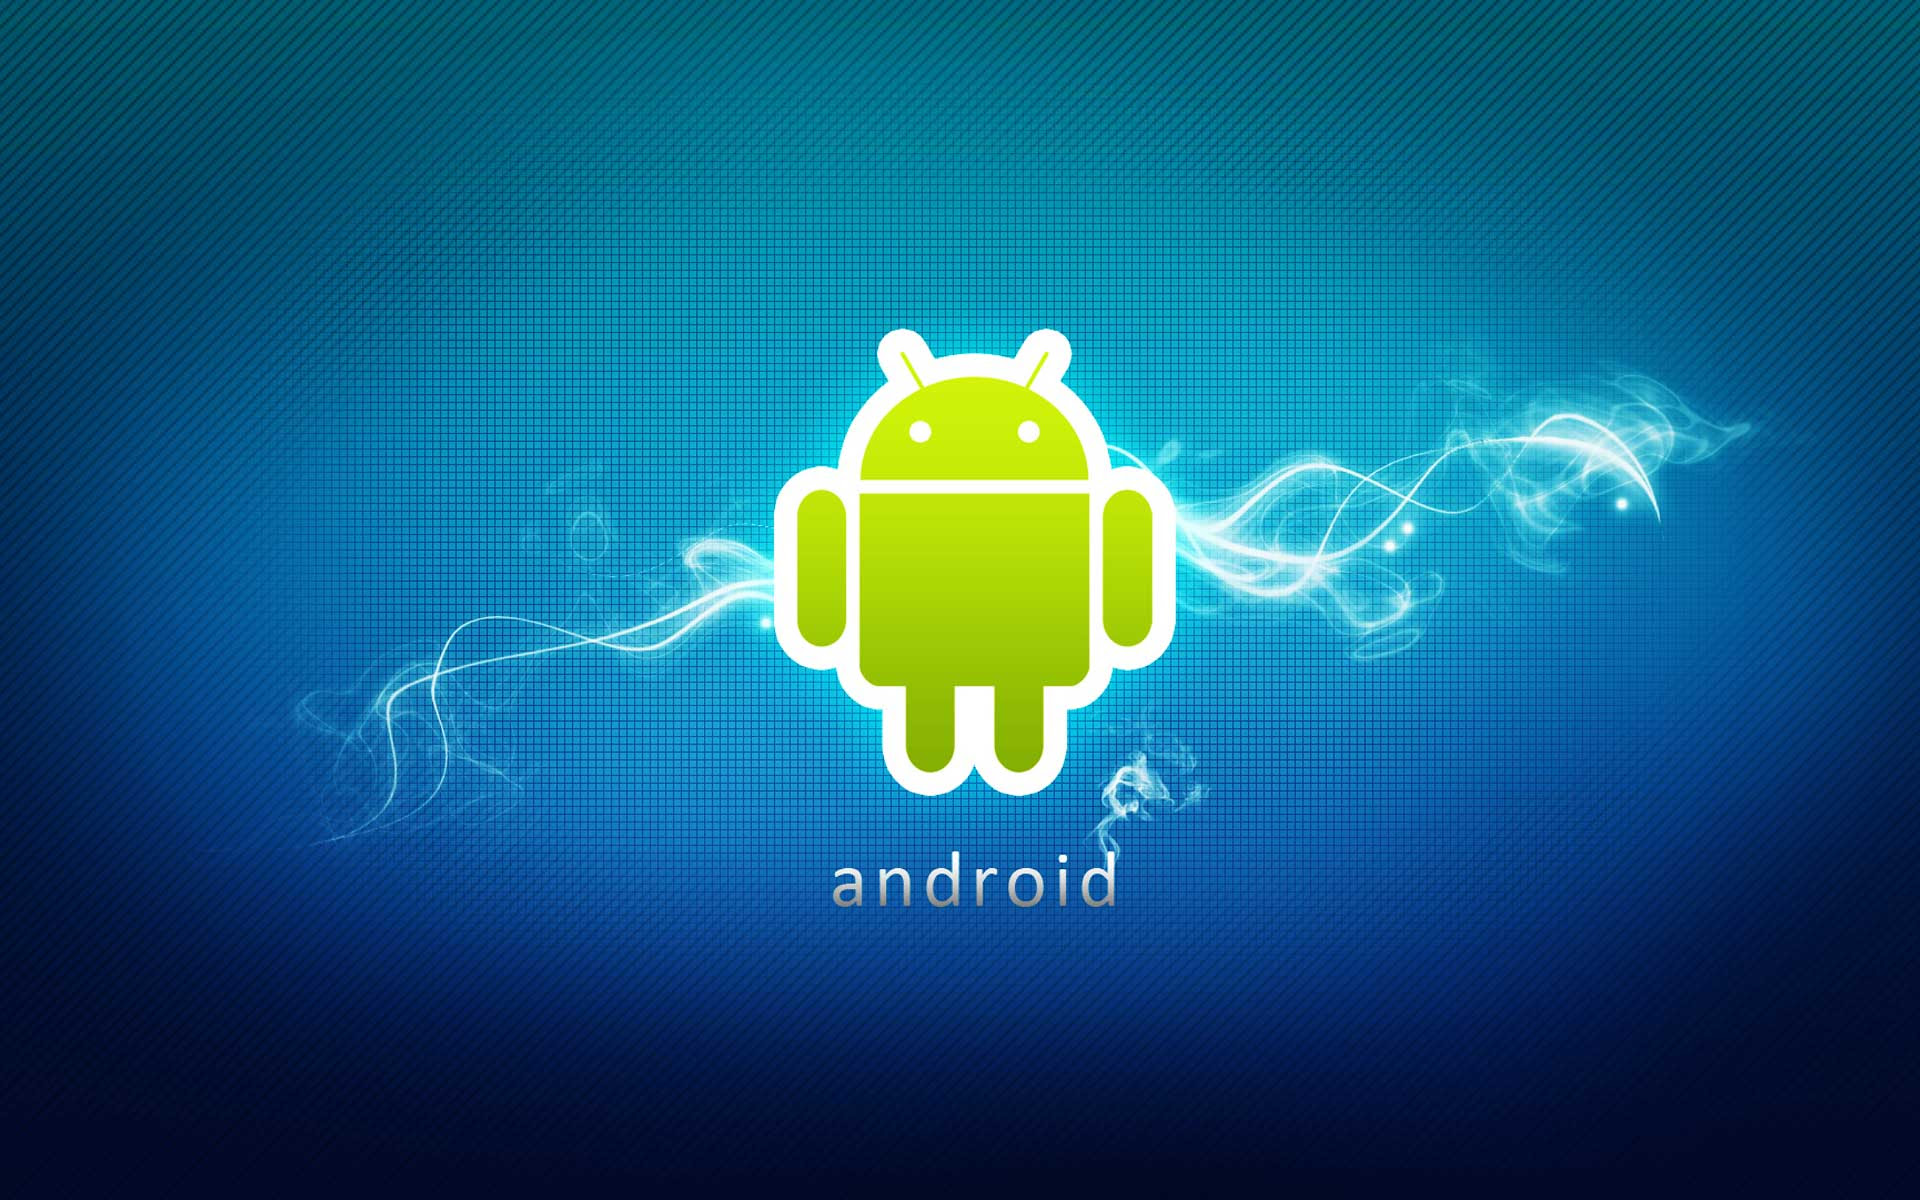 Android Logo Wallpapers HD  PixelsTalk.Net